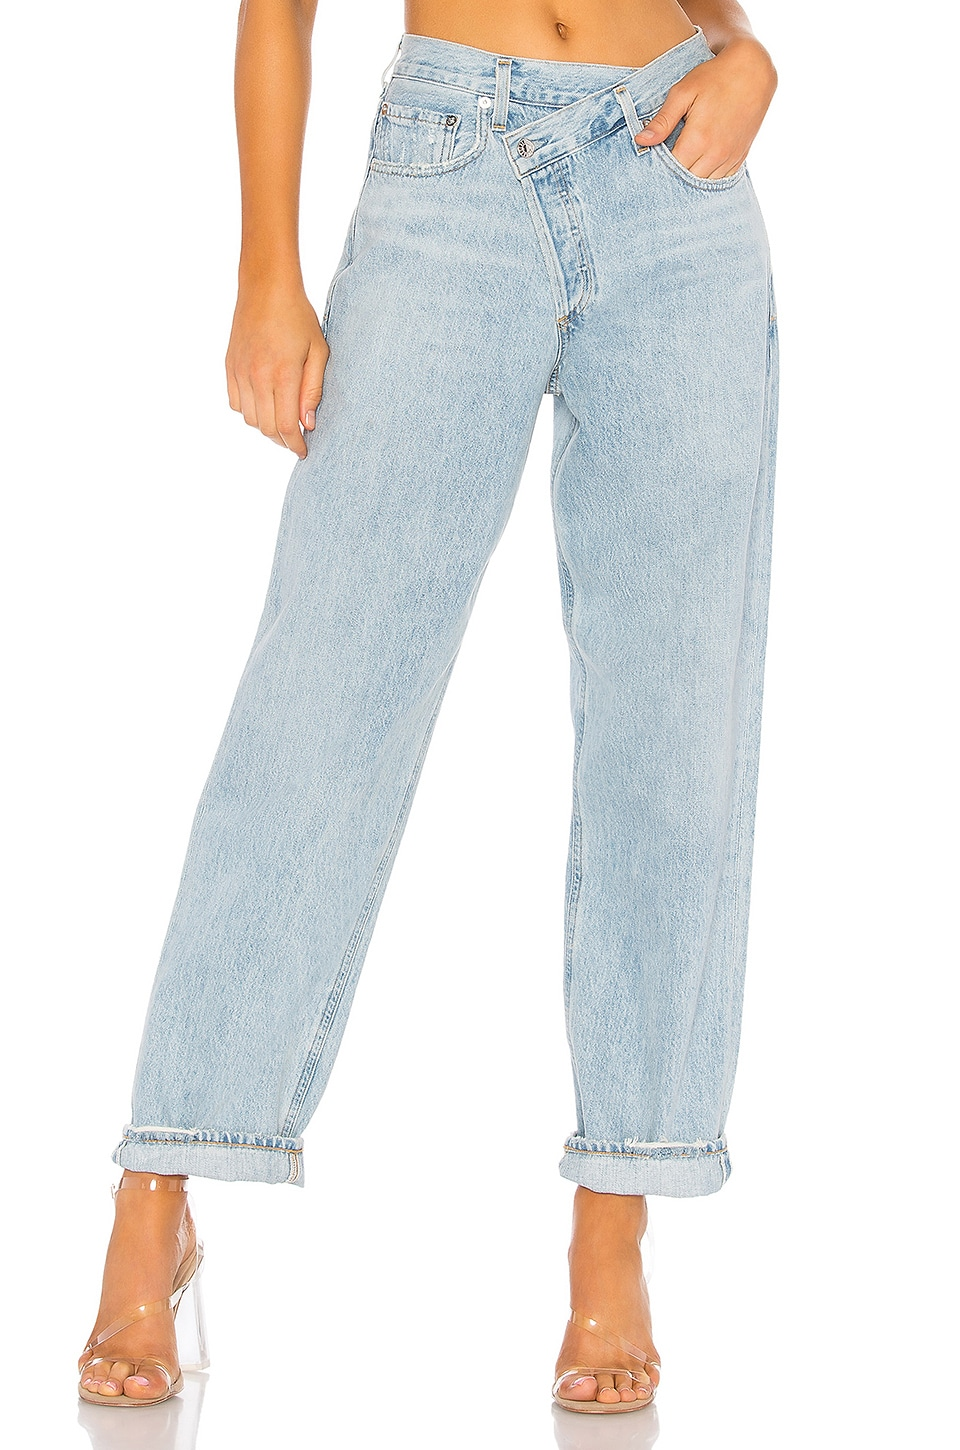 Criss Cross Upsized Jean                     AGOLDE 4